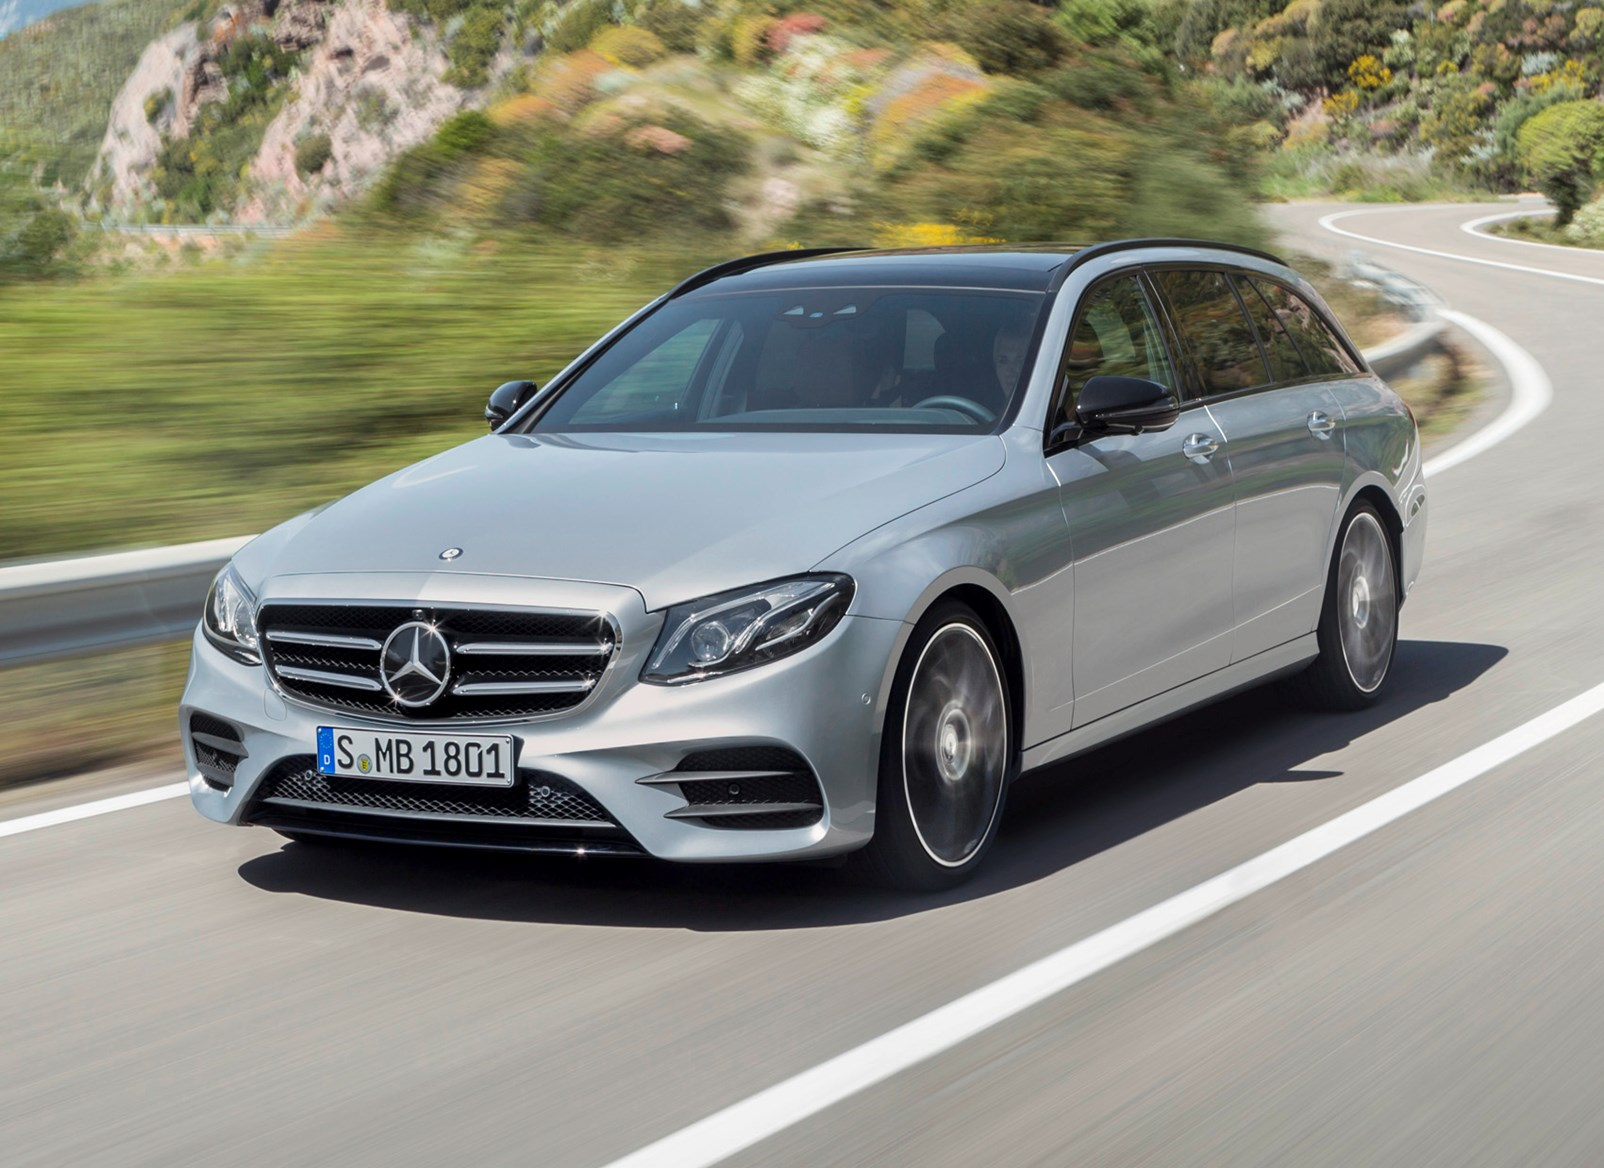 Mercedes benz e class estate 2016 photos parkers for Mercedes benz silver